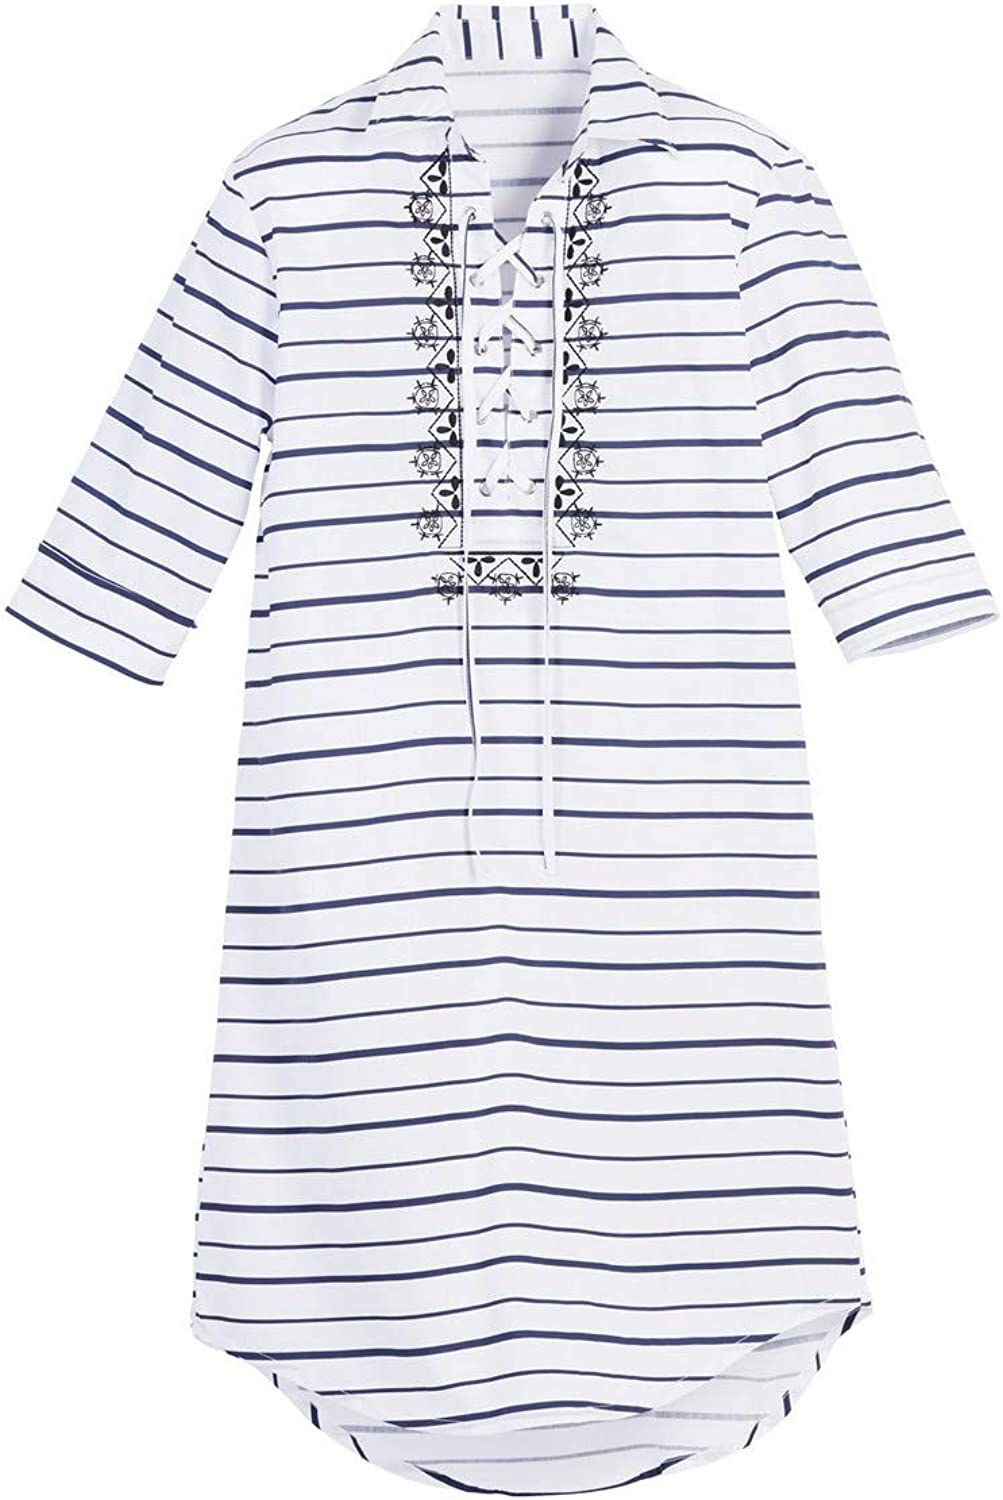 Beachcombers Women Cotton Polyester Striped Caftan Cover Up White Small